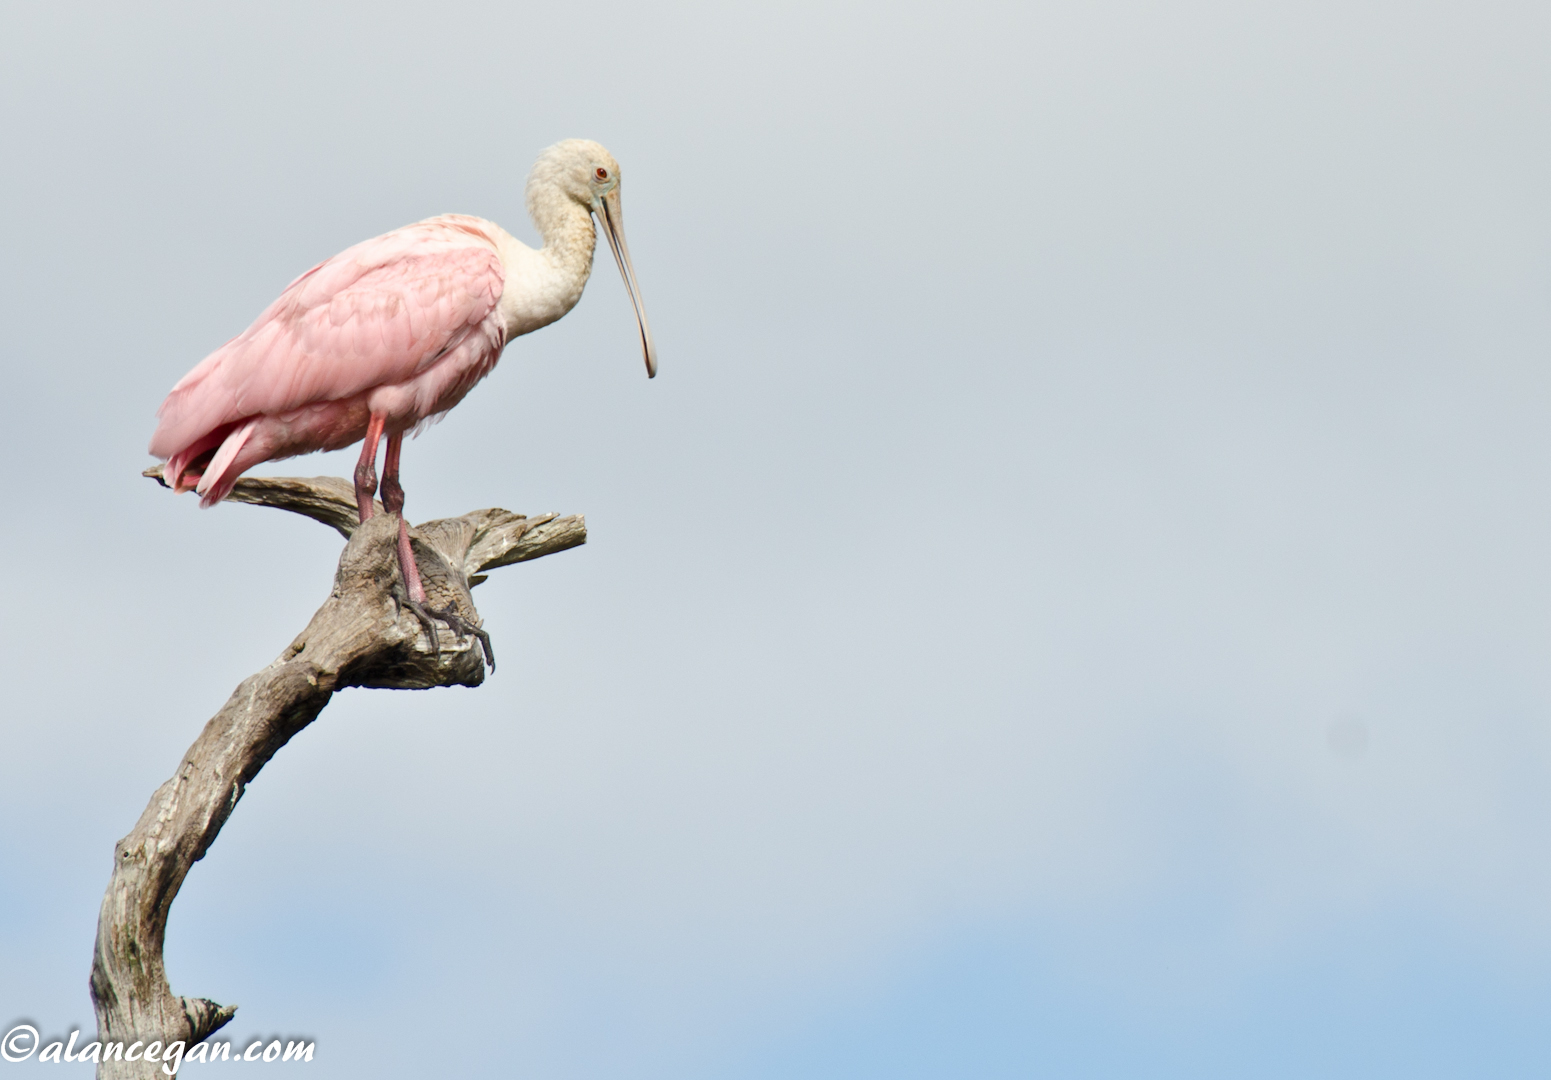 Amazing nature photograph of a Perched Roseate Spoonbill taken in Florida by Alan C Egan